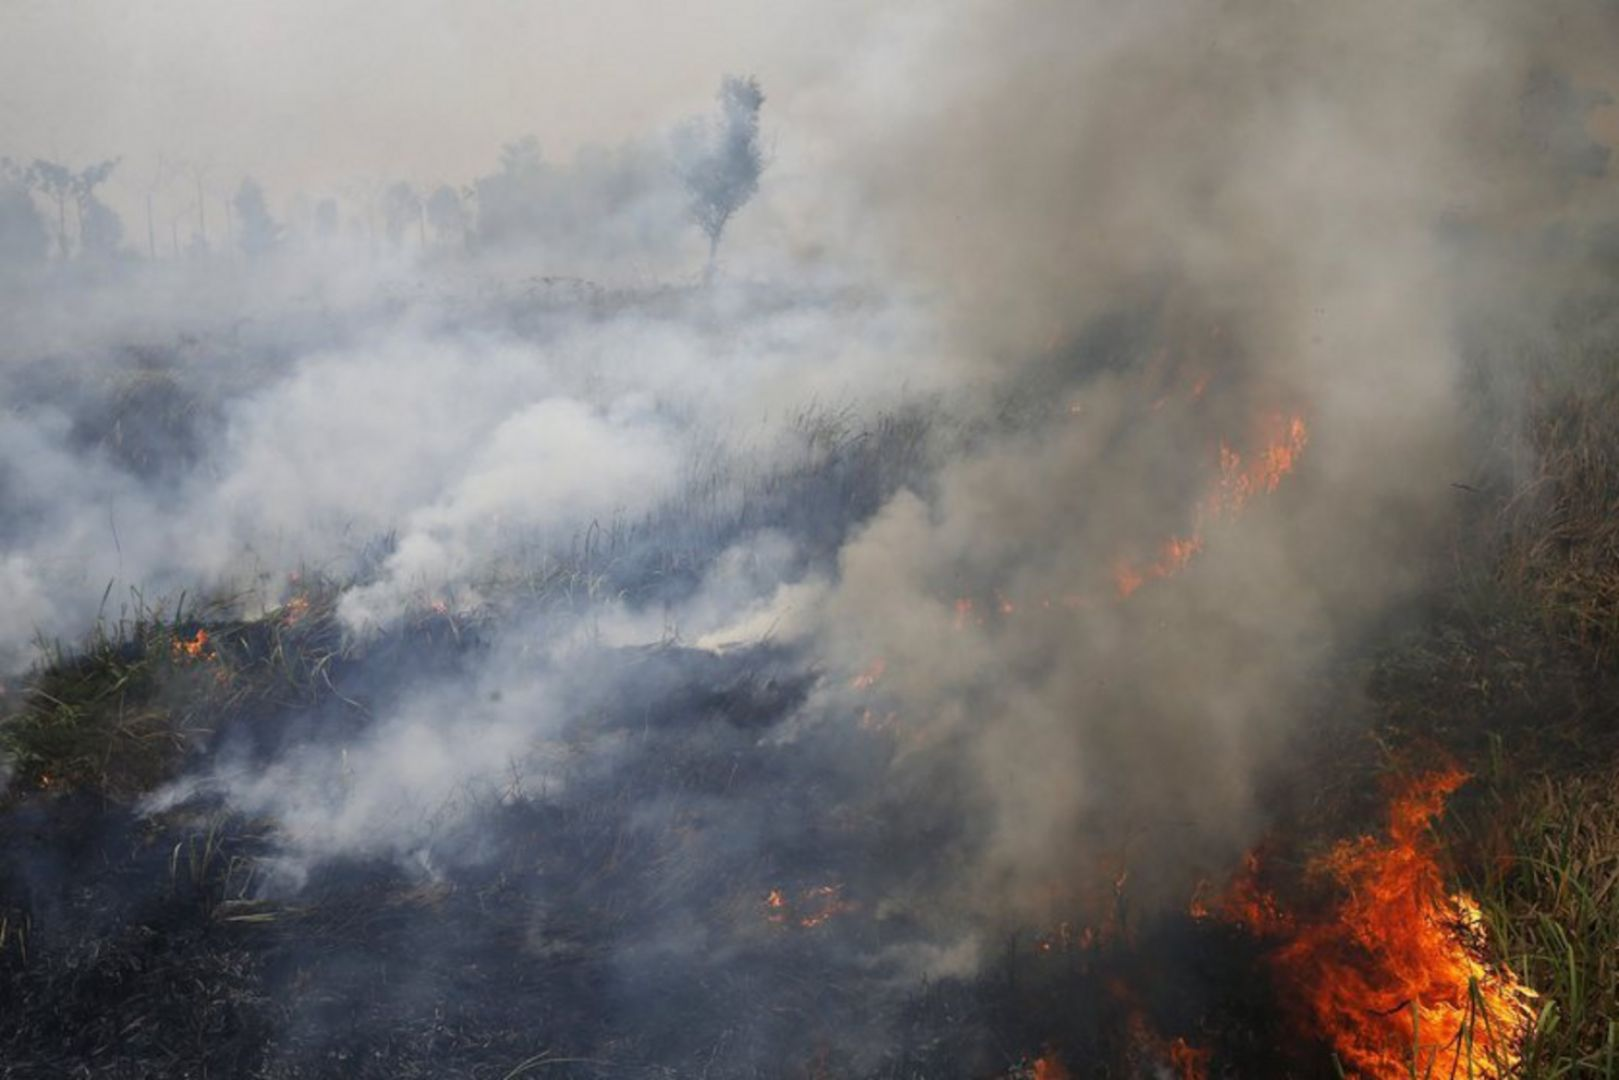 A 2015 peat fire in Sumatra, Indonesia